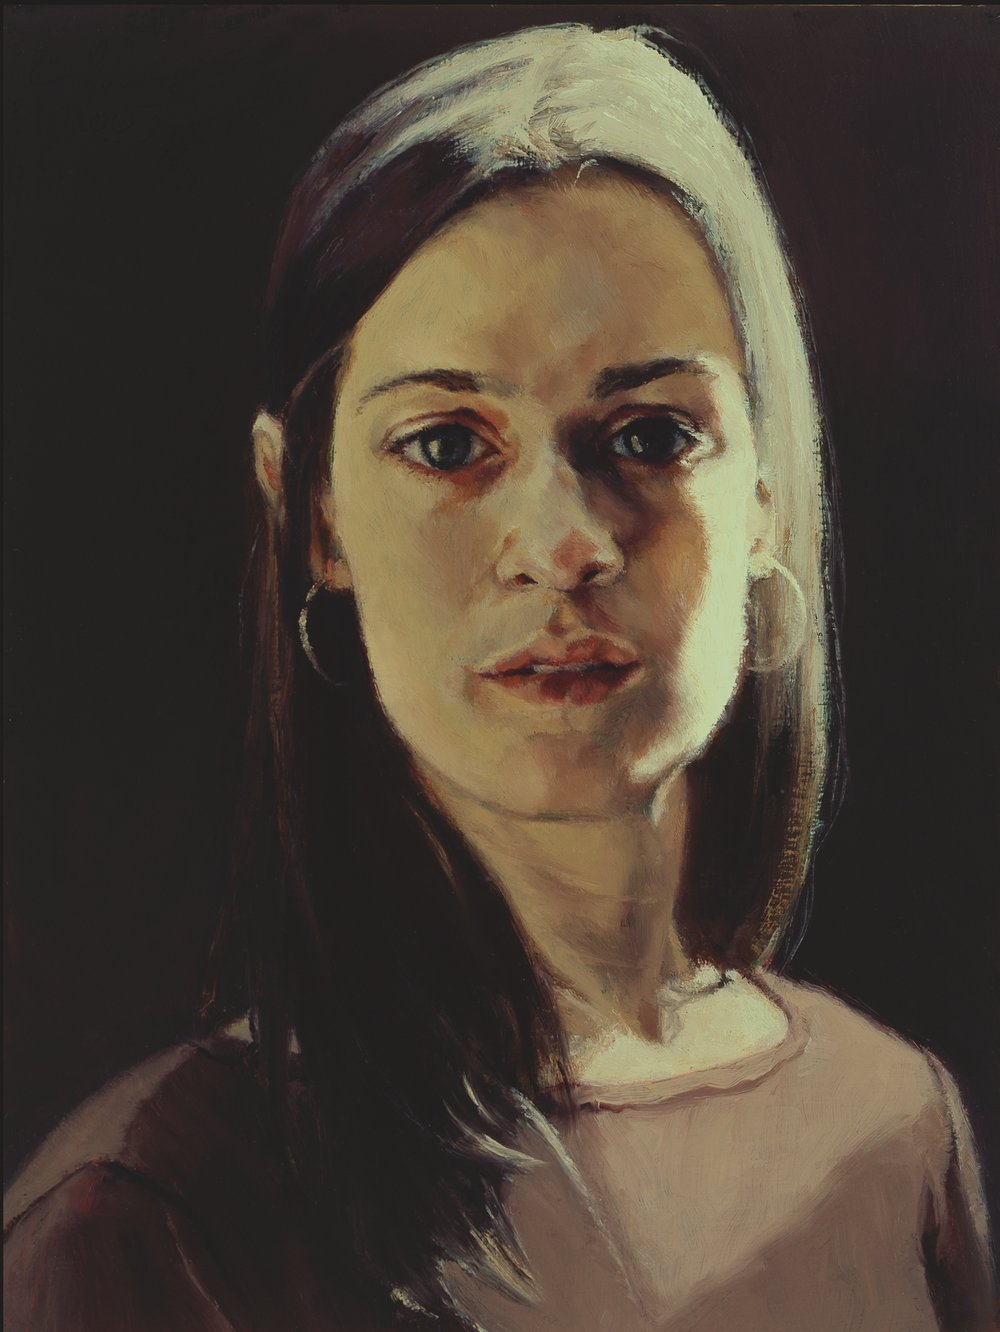 """Flora , Oil on Wood Panel, 2005, 12"""" x 9"""", Private Collection"""